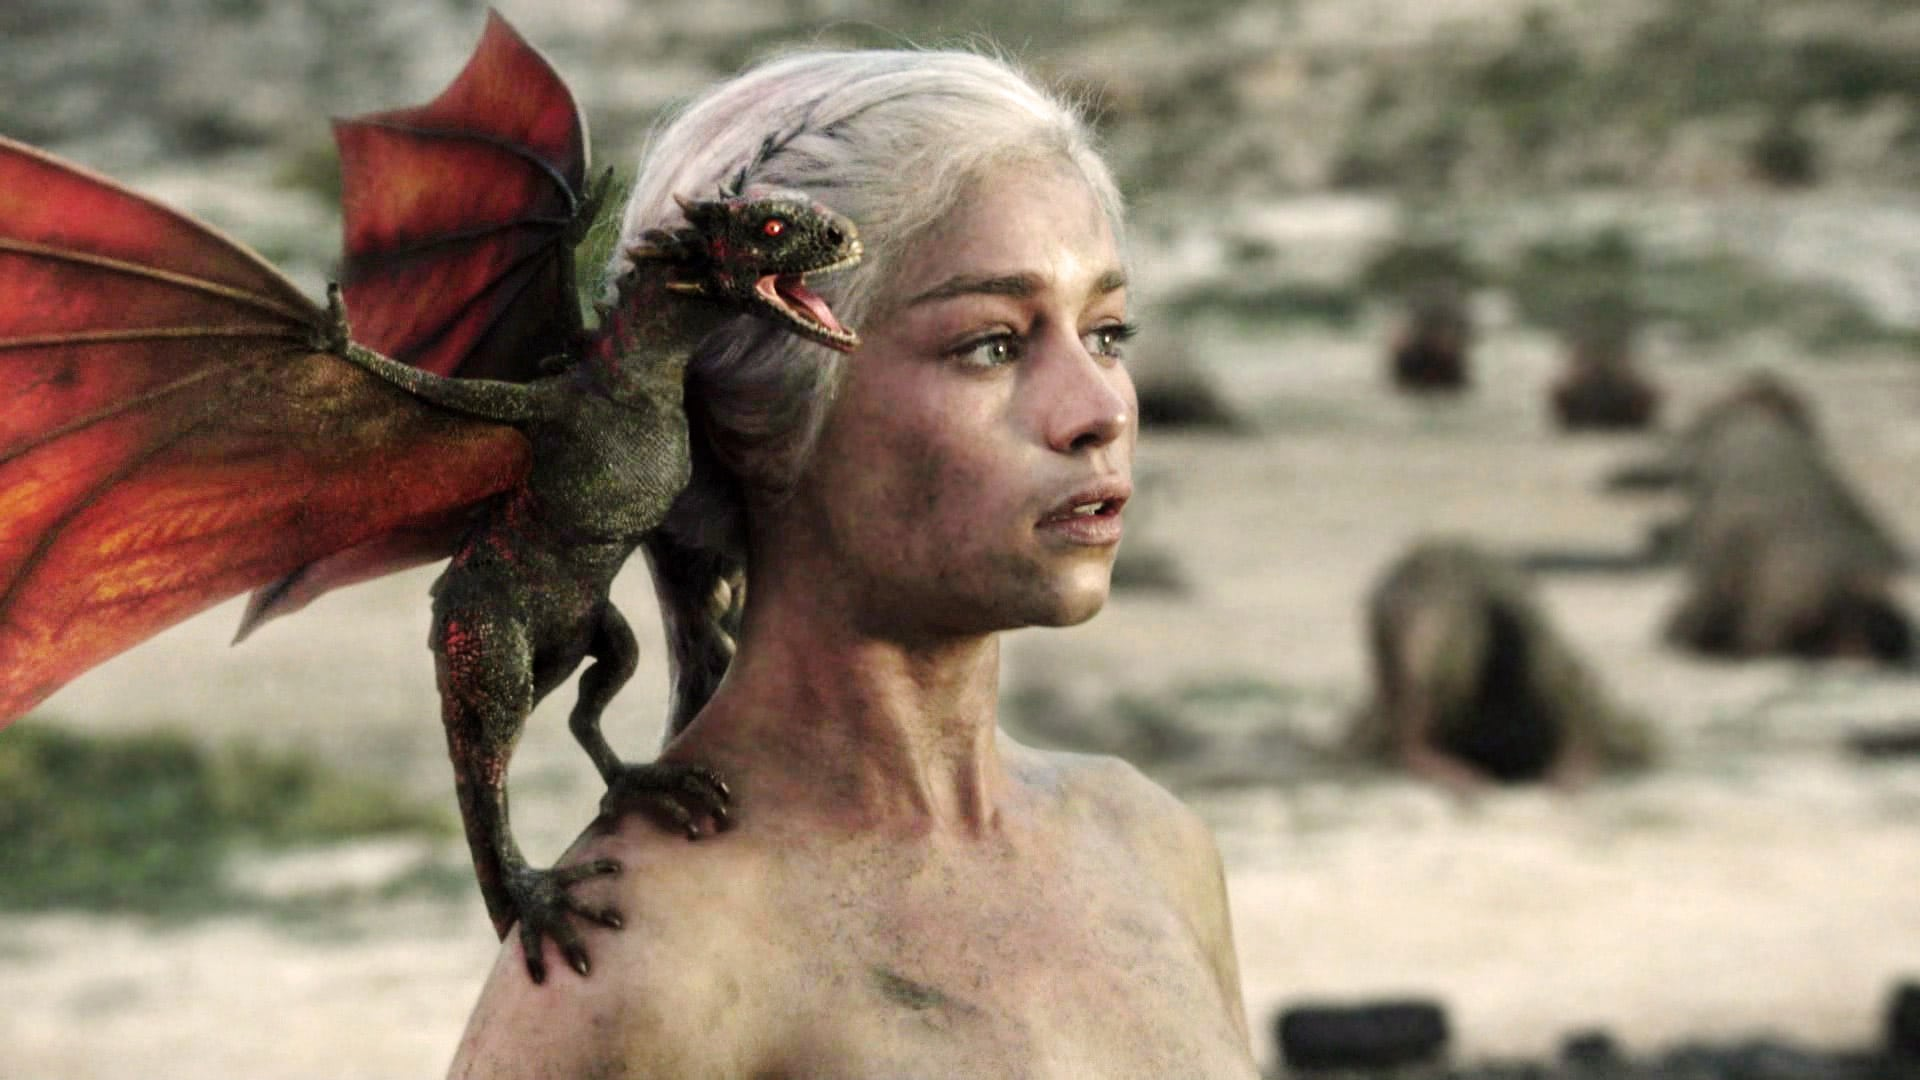 Game of Thrones - Season 1 Episode 10 : Fire and Blood